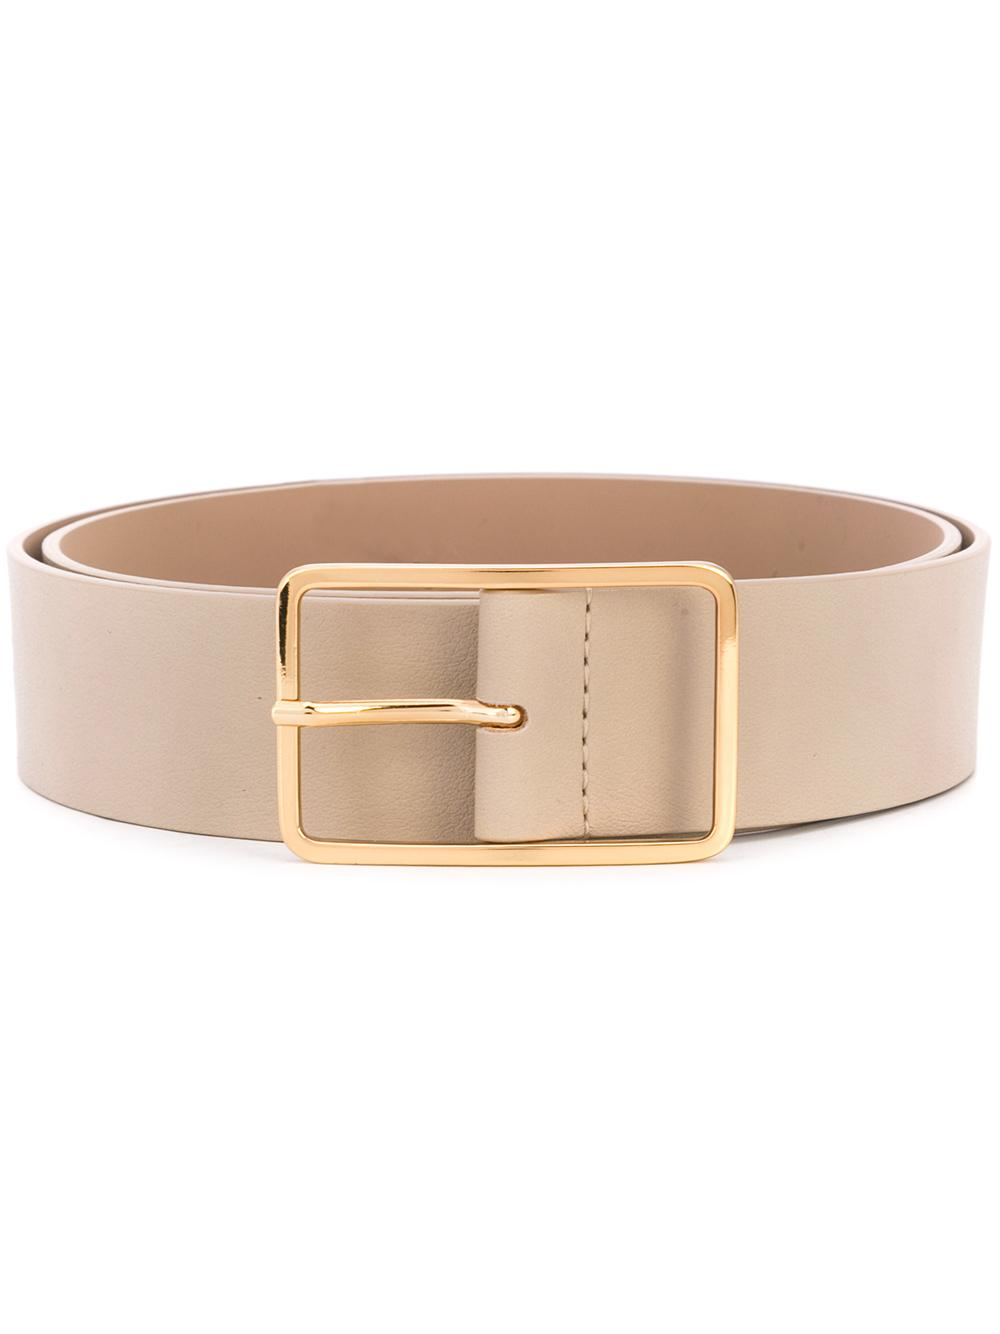 Mill Asmooth Rectangle Buckle